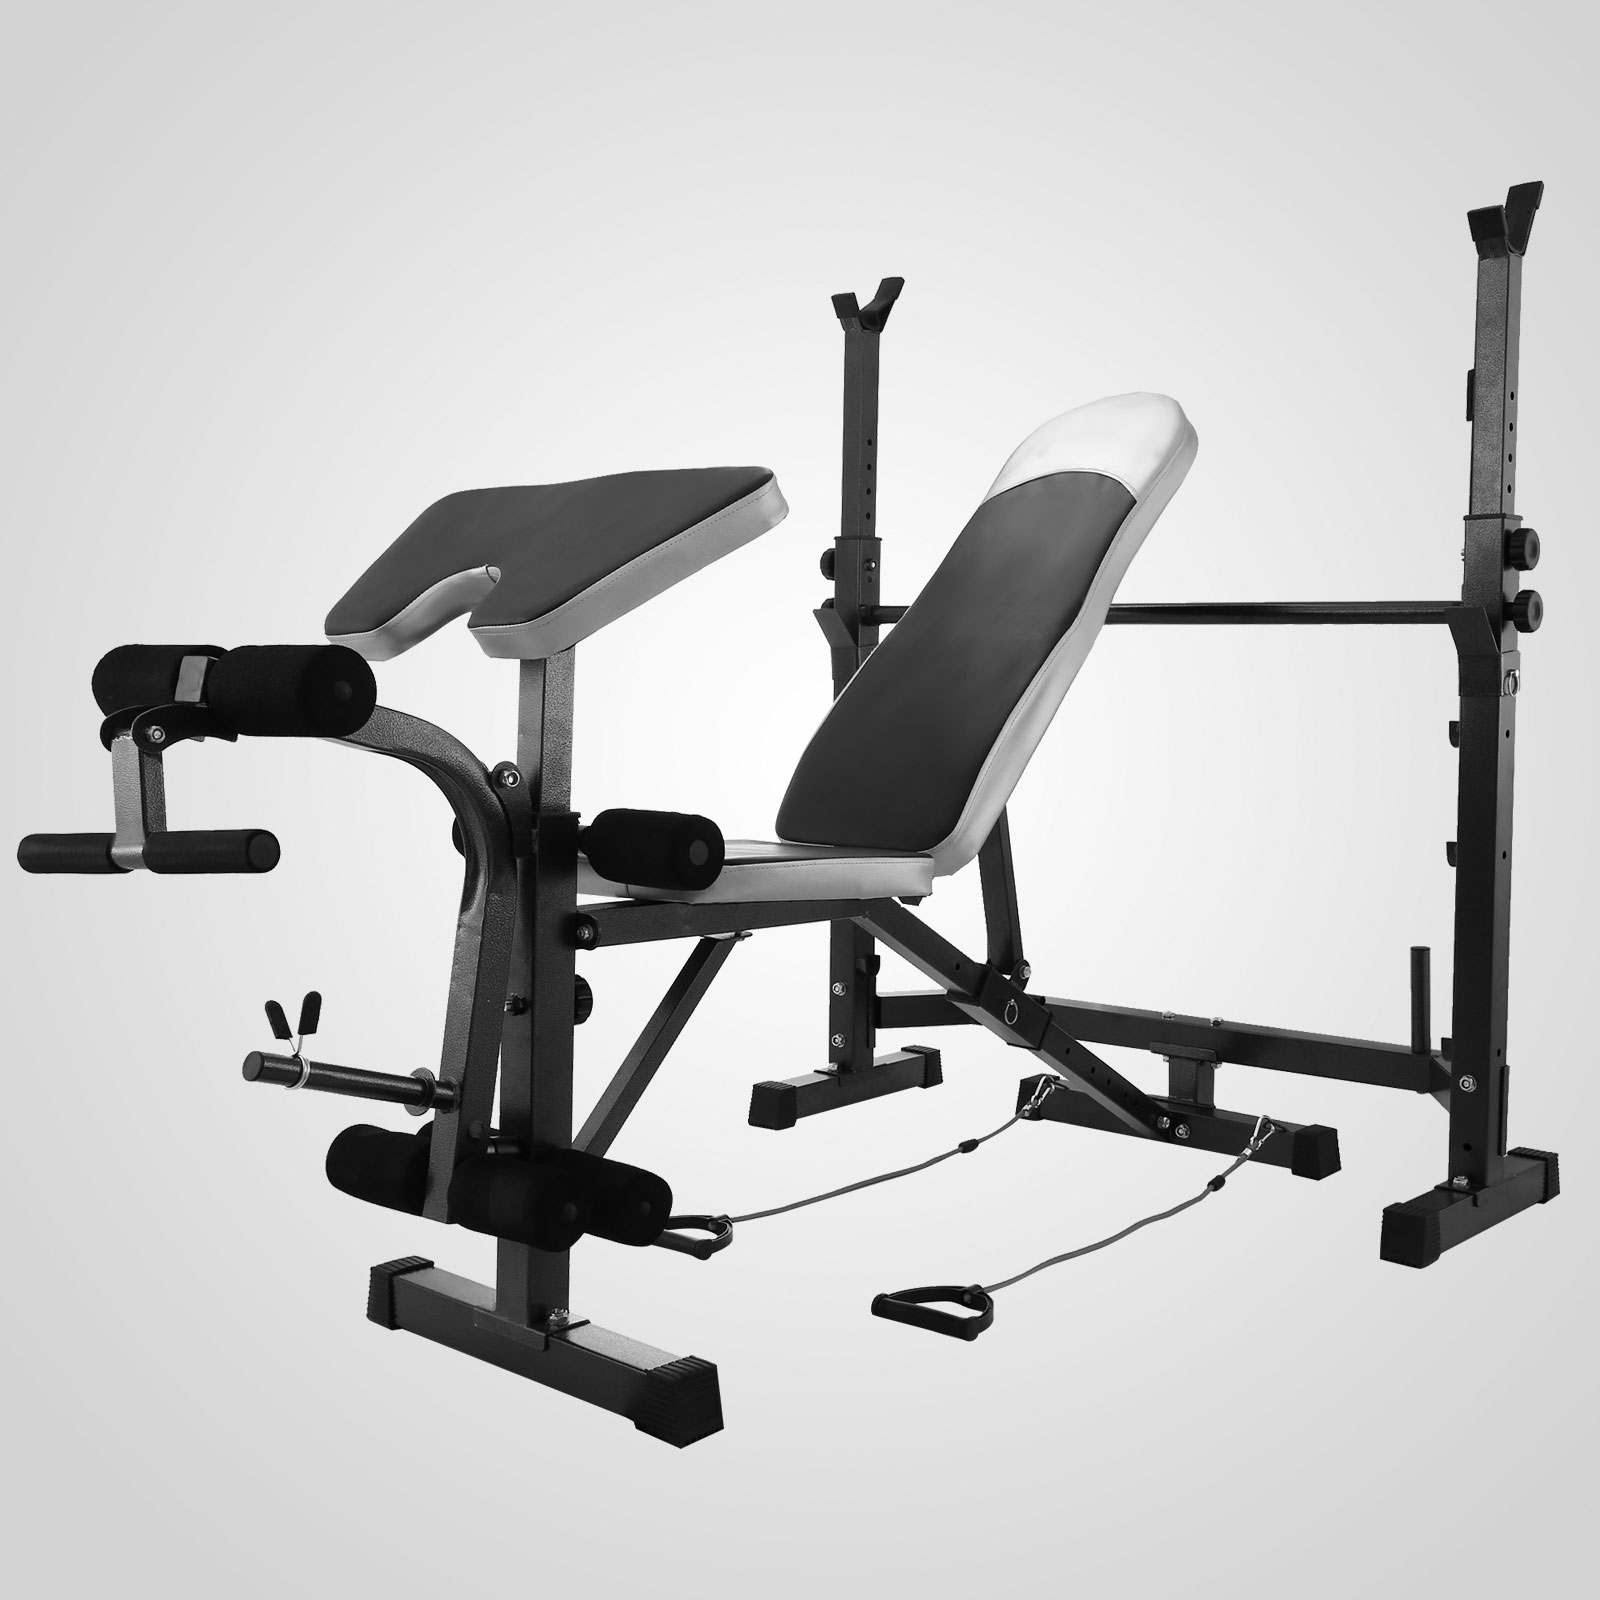 Weight Bench Set Home Gym Deluxe With 660Lbs Weights